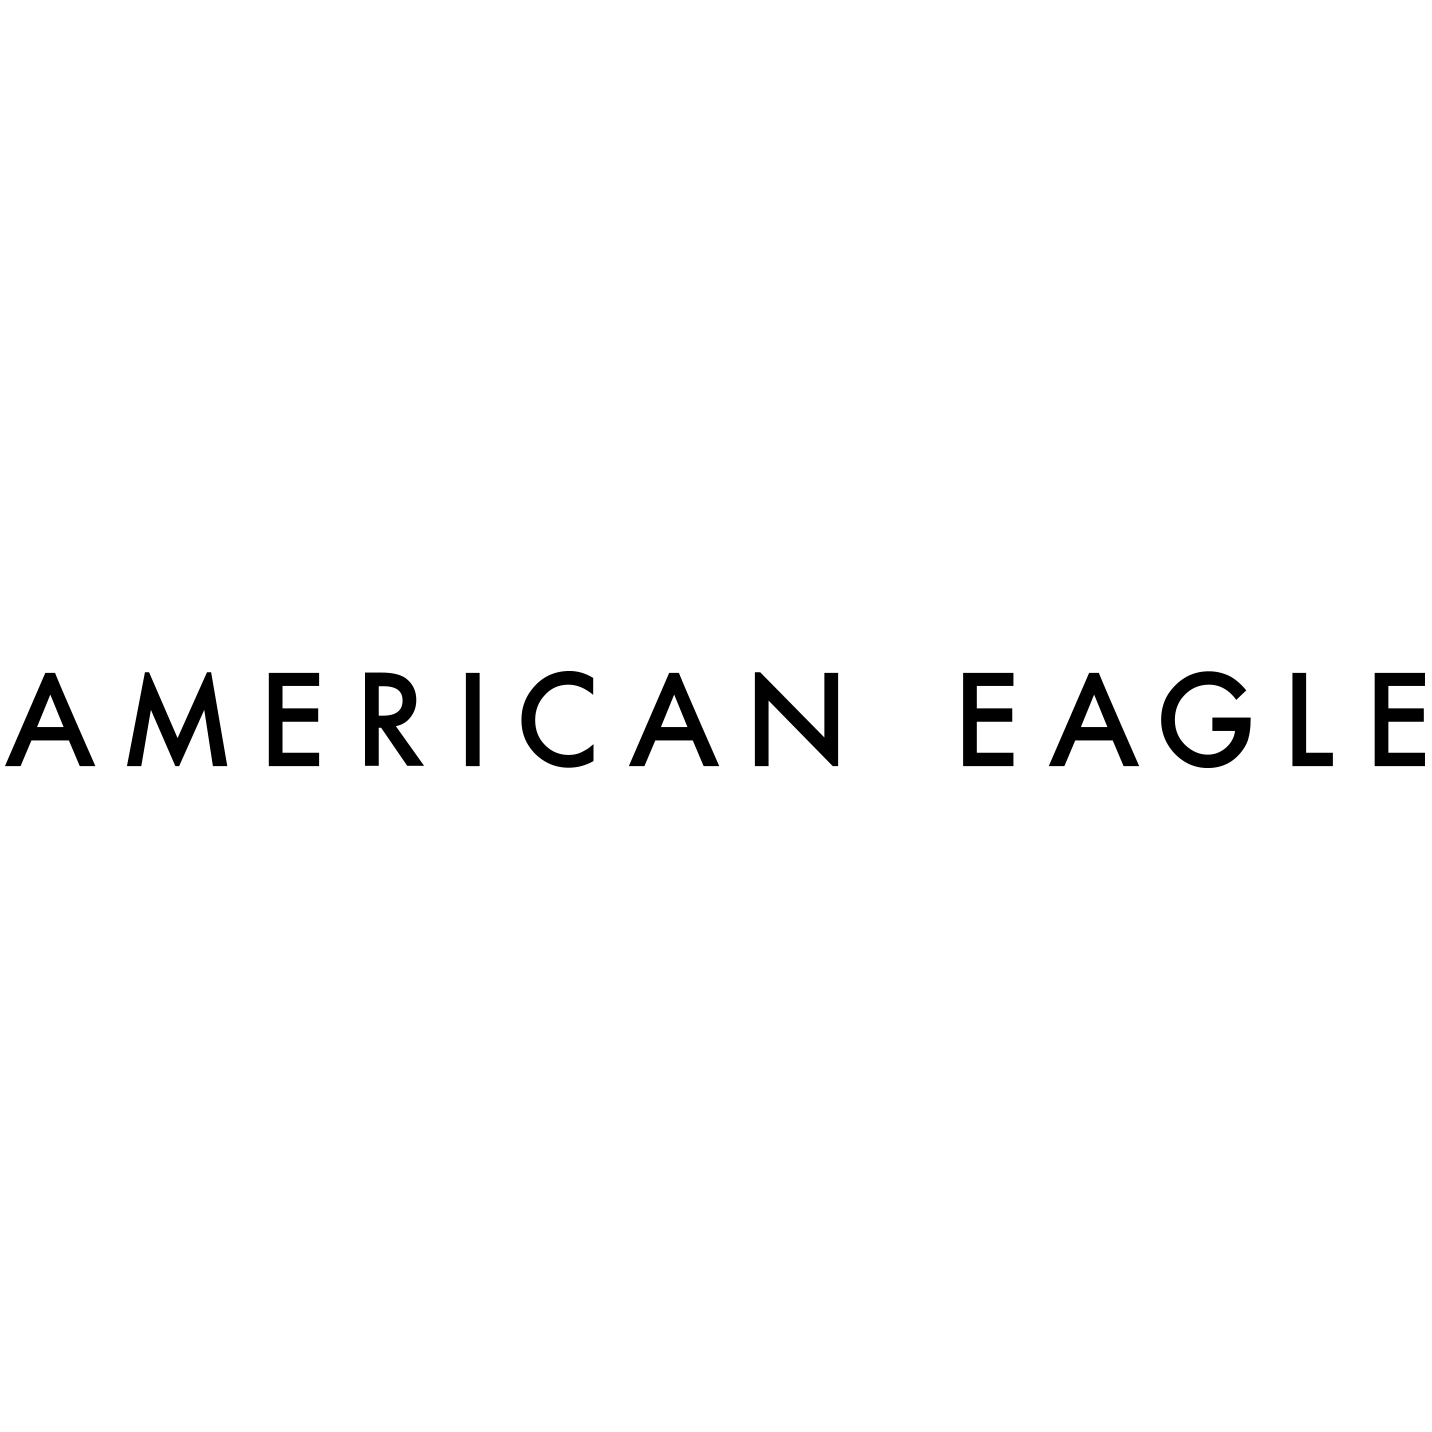 AEO Factory Store Johnson Creek Premium Outlets In WI